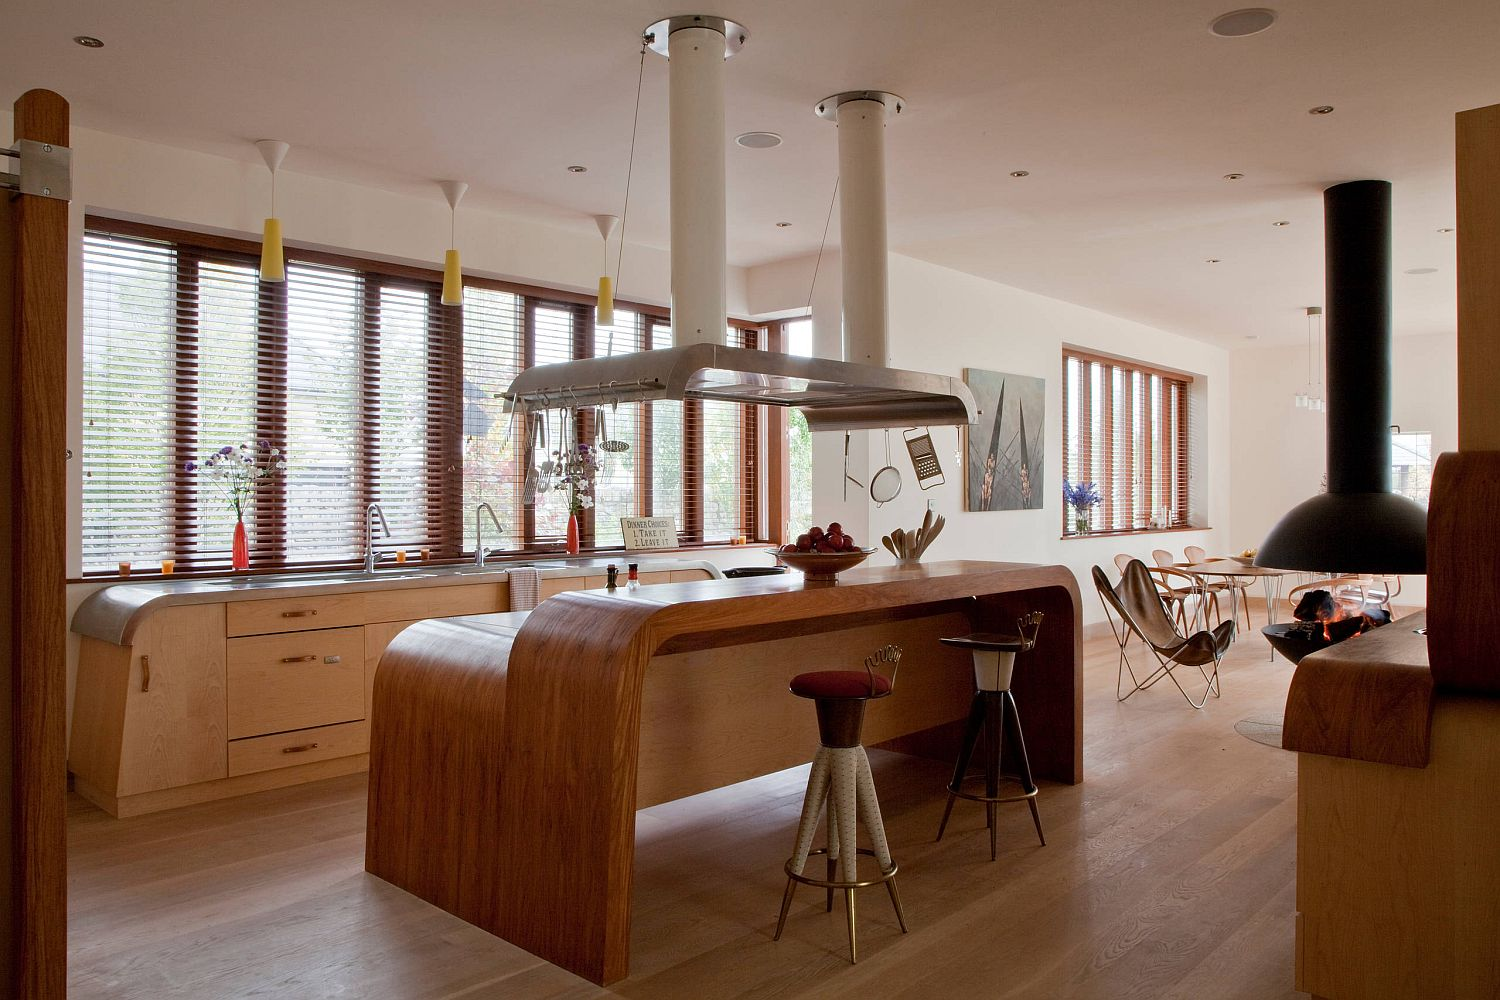 Quirky seating ideas for a kitchen that is equally eclectic in its style